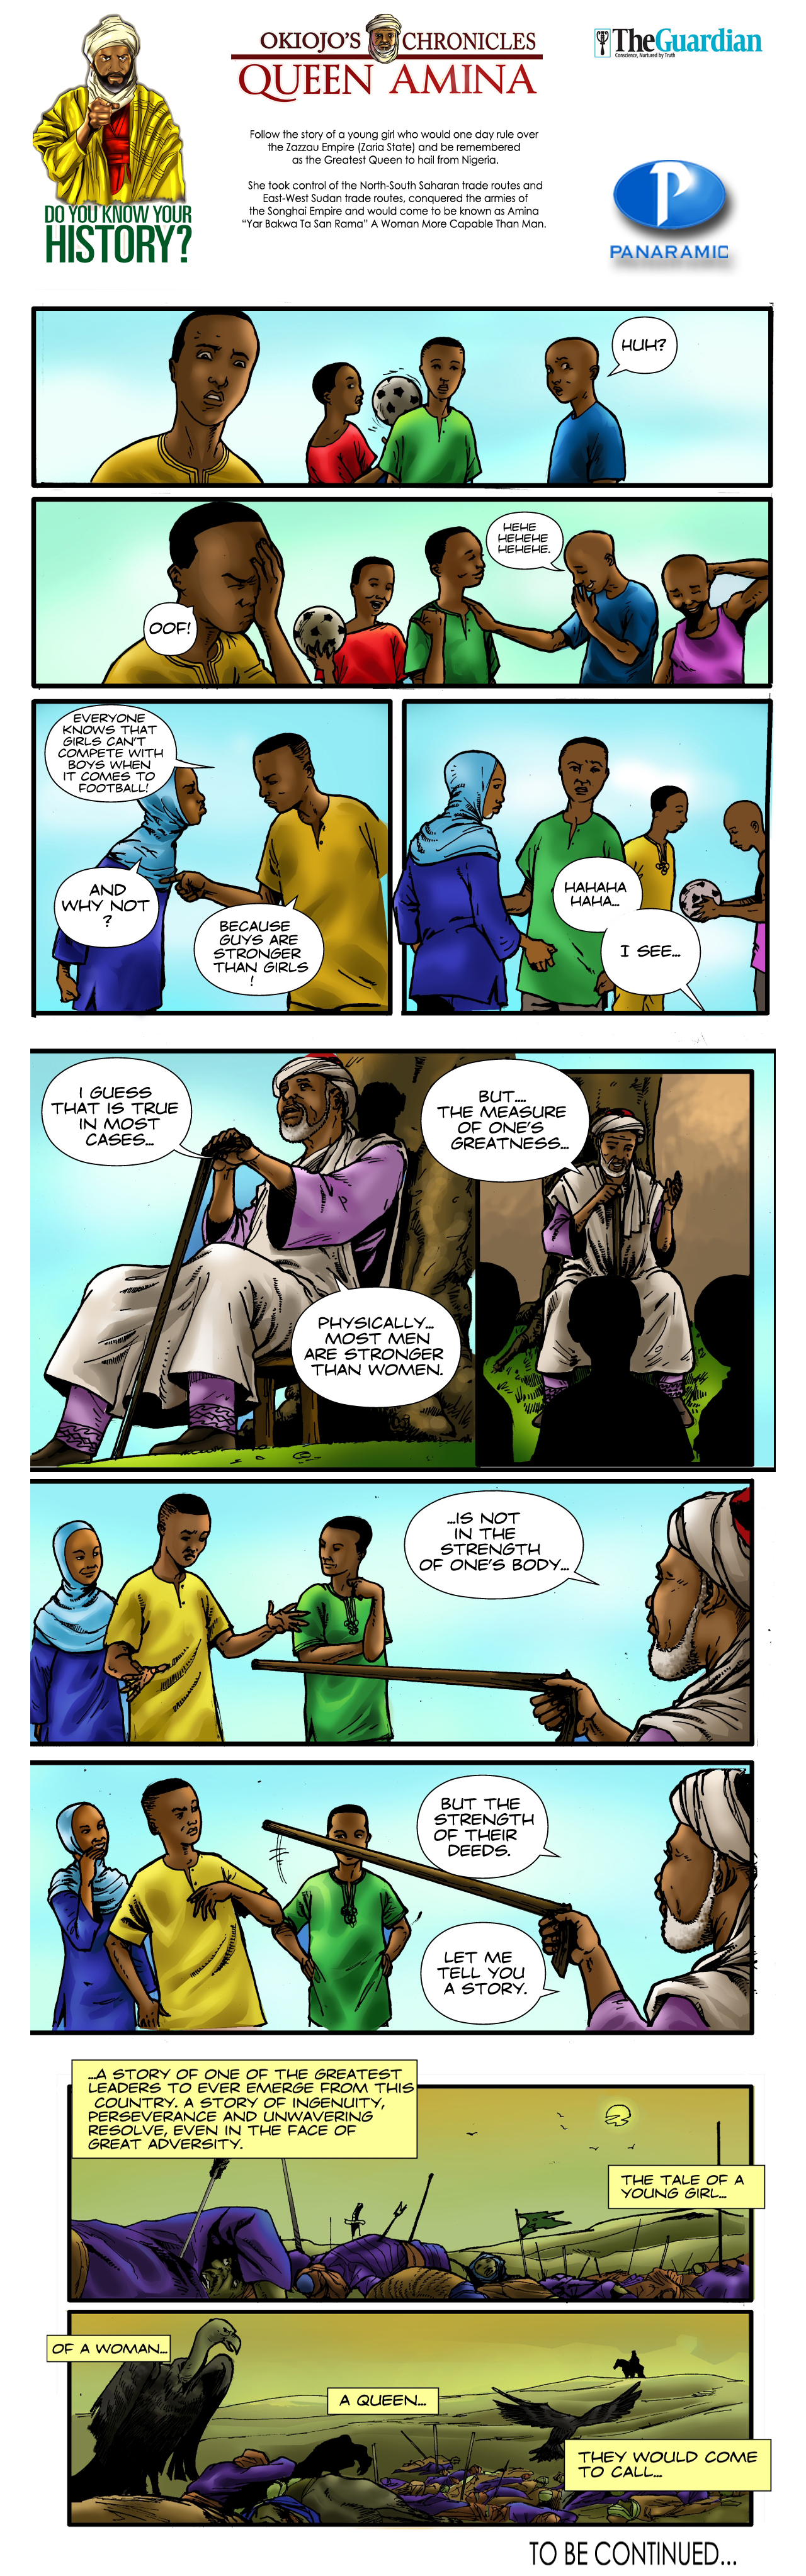 Okiojo's Chronicles - Queen Amina (Part 1) - 2